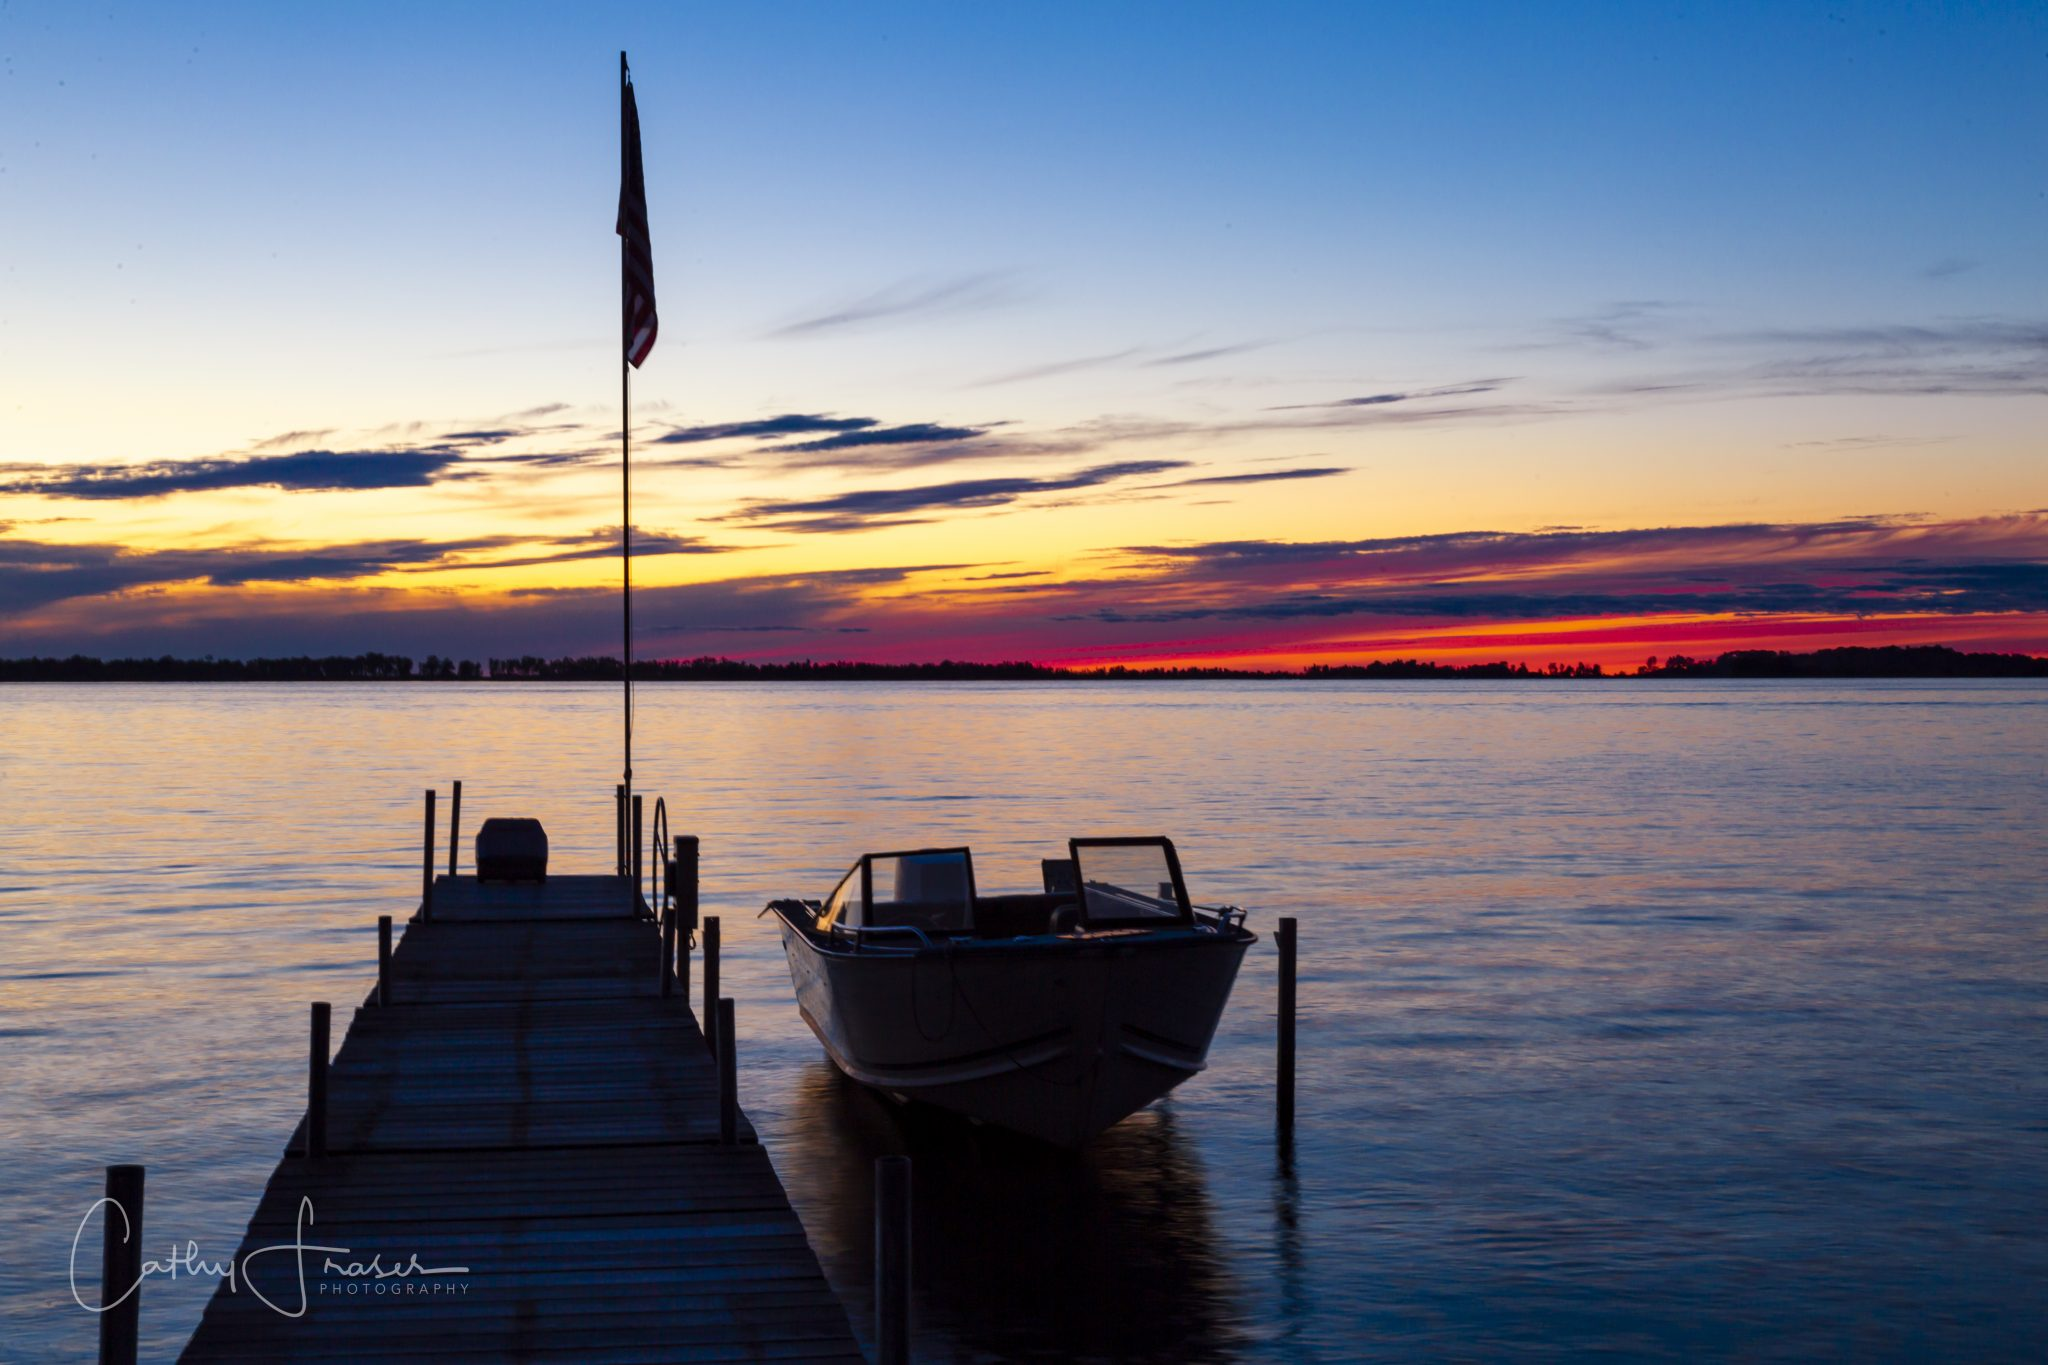 Landscape Photography of a boat docked at a lake in New York in front of a beautiful and colorful sunset